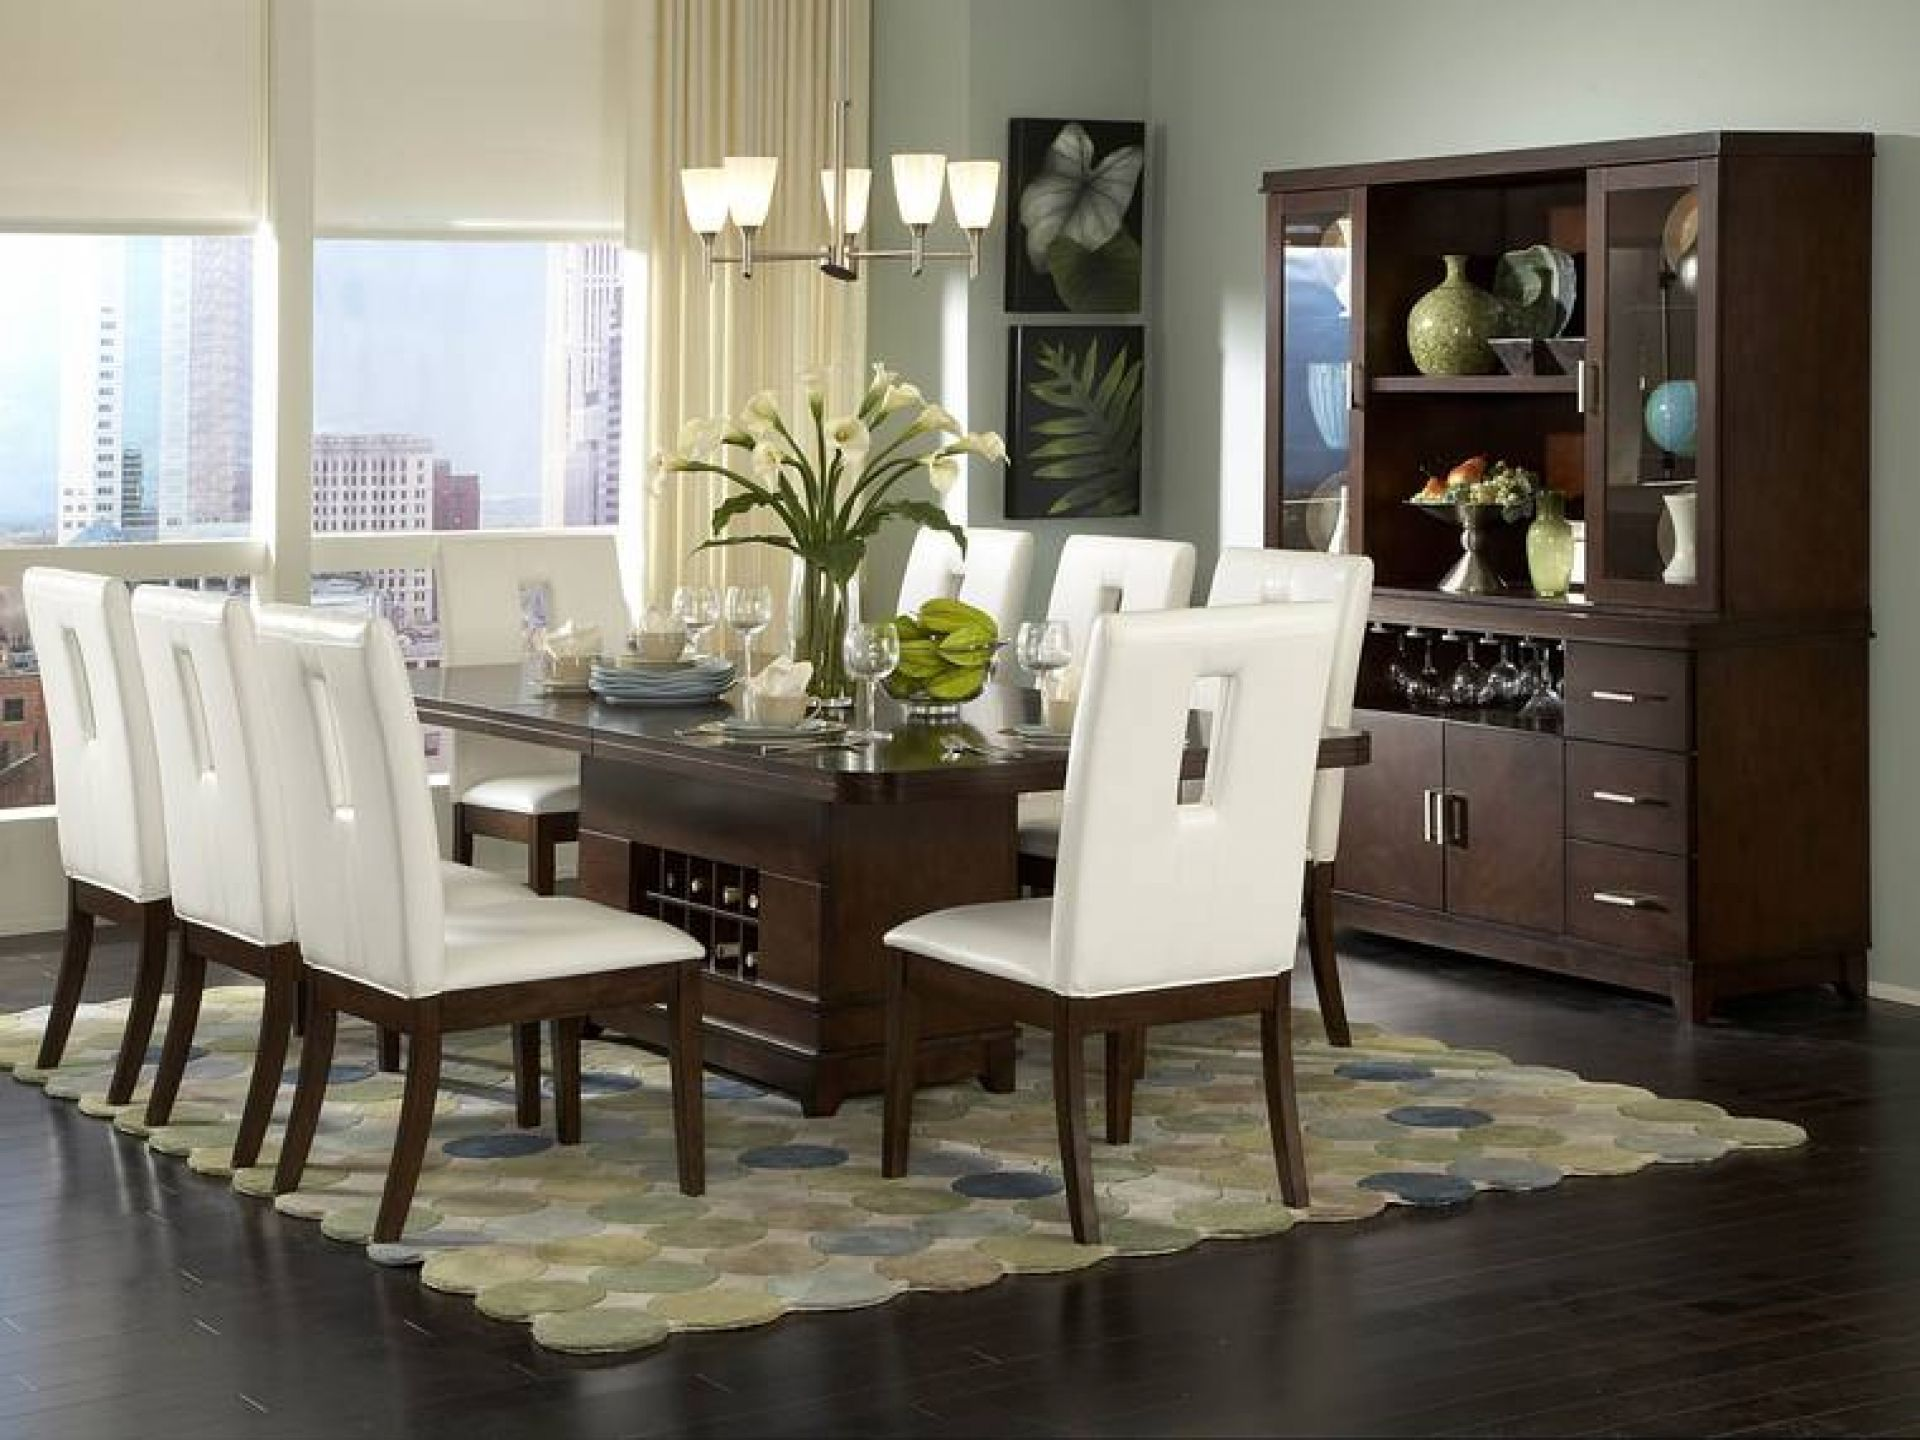 Contemporary Dining Room Chairs Prepossessing How To Give Your Home A Budget Friendly Makeover  Dining Room Design Ideas